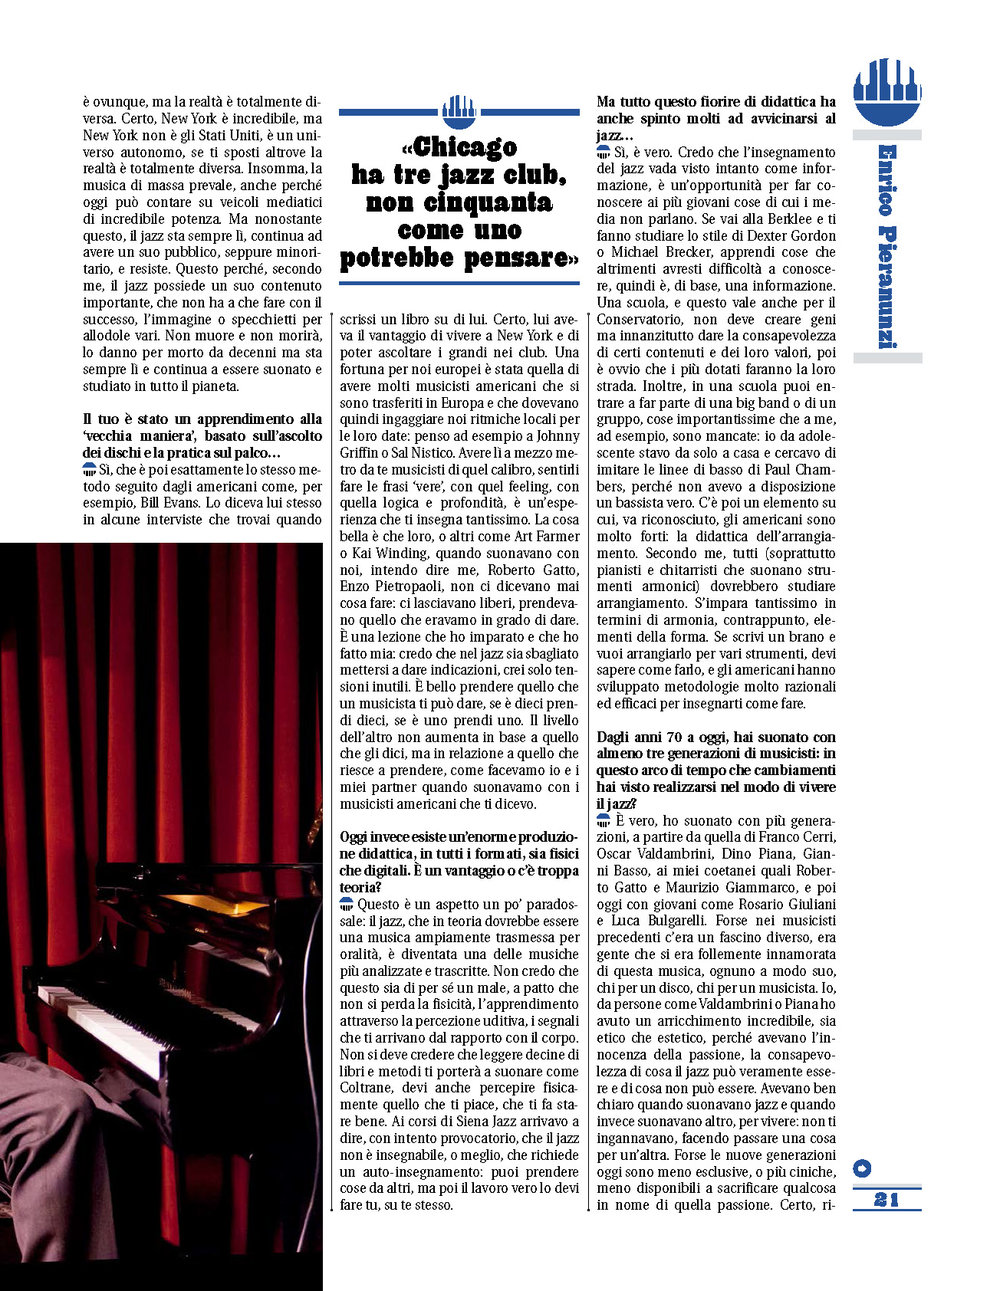 6 estratto Interview Pieranunzi da CJ2_Pagina_7.jpg